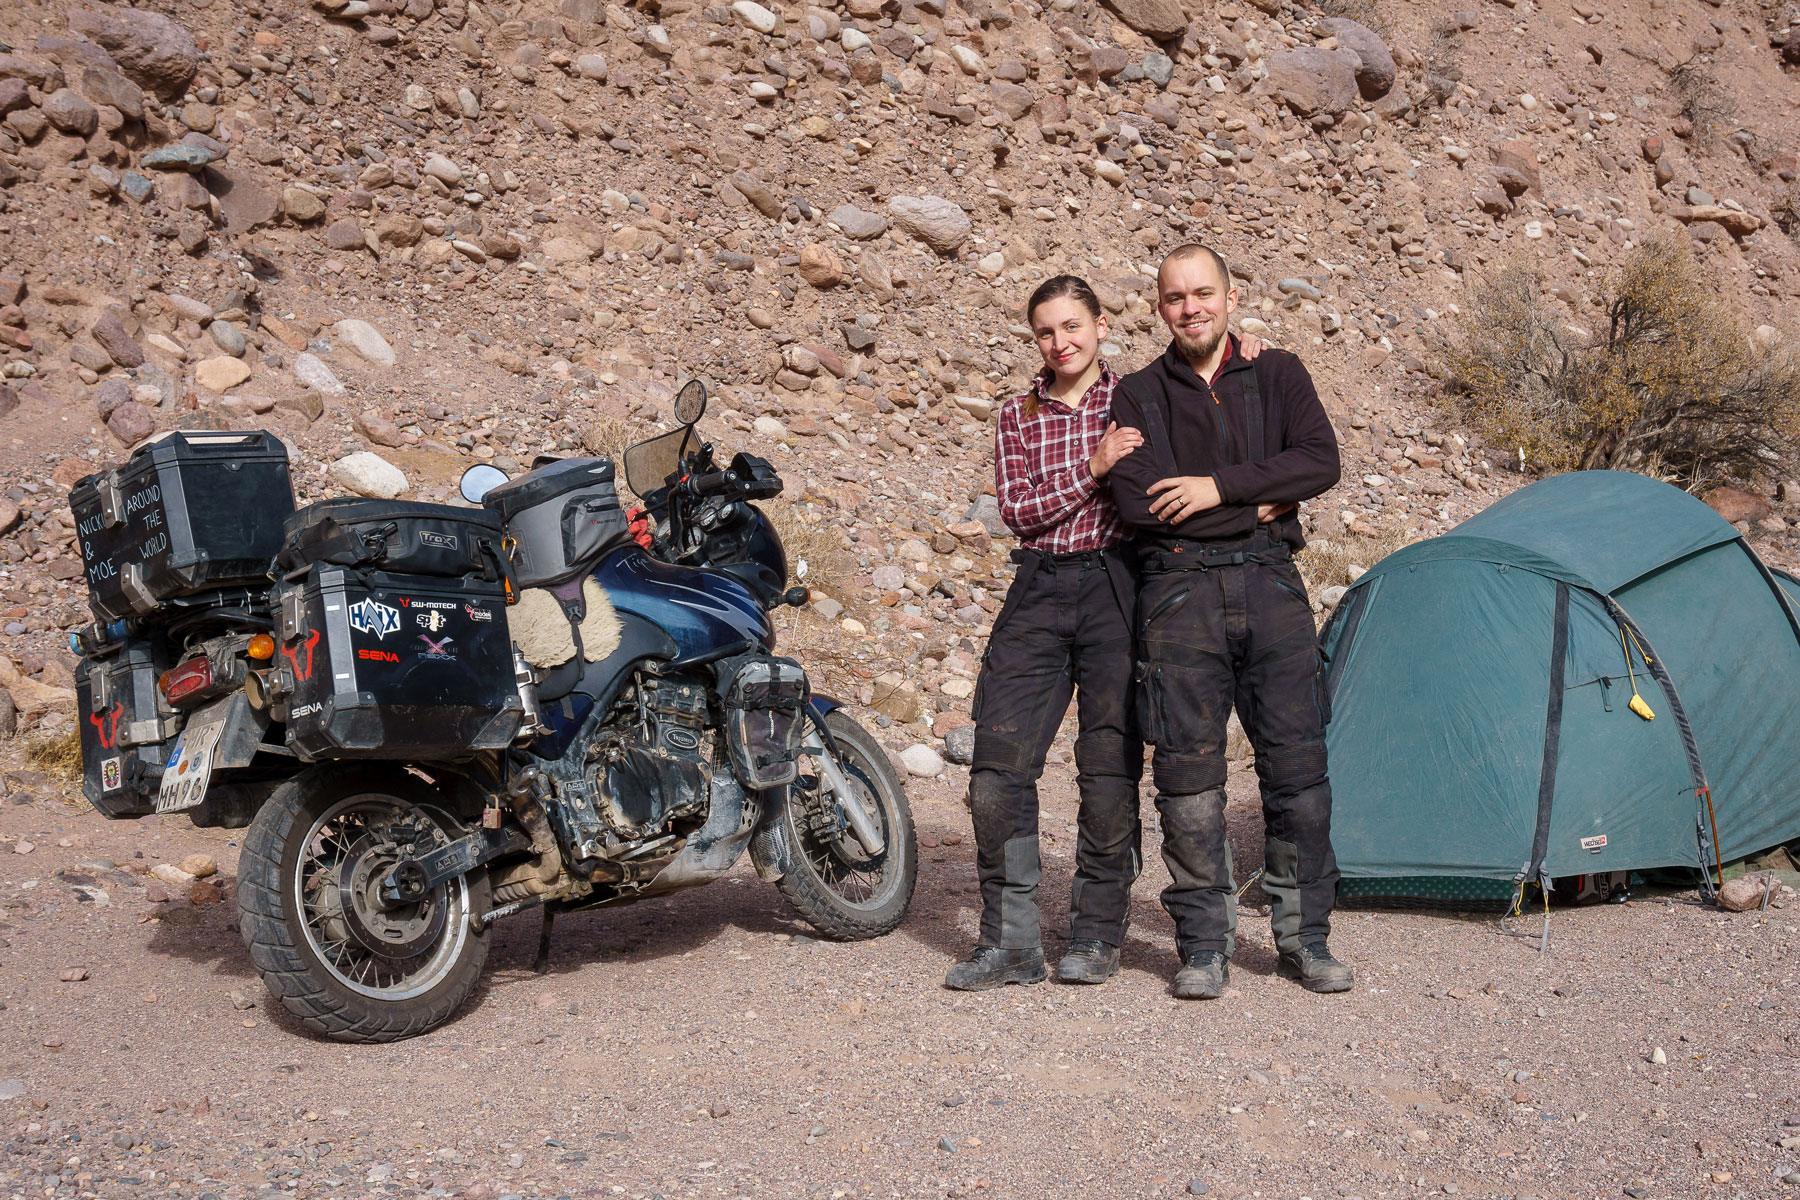 Nicki and Moe standing happily in front of the tent and the motorcycle